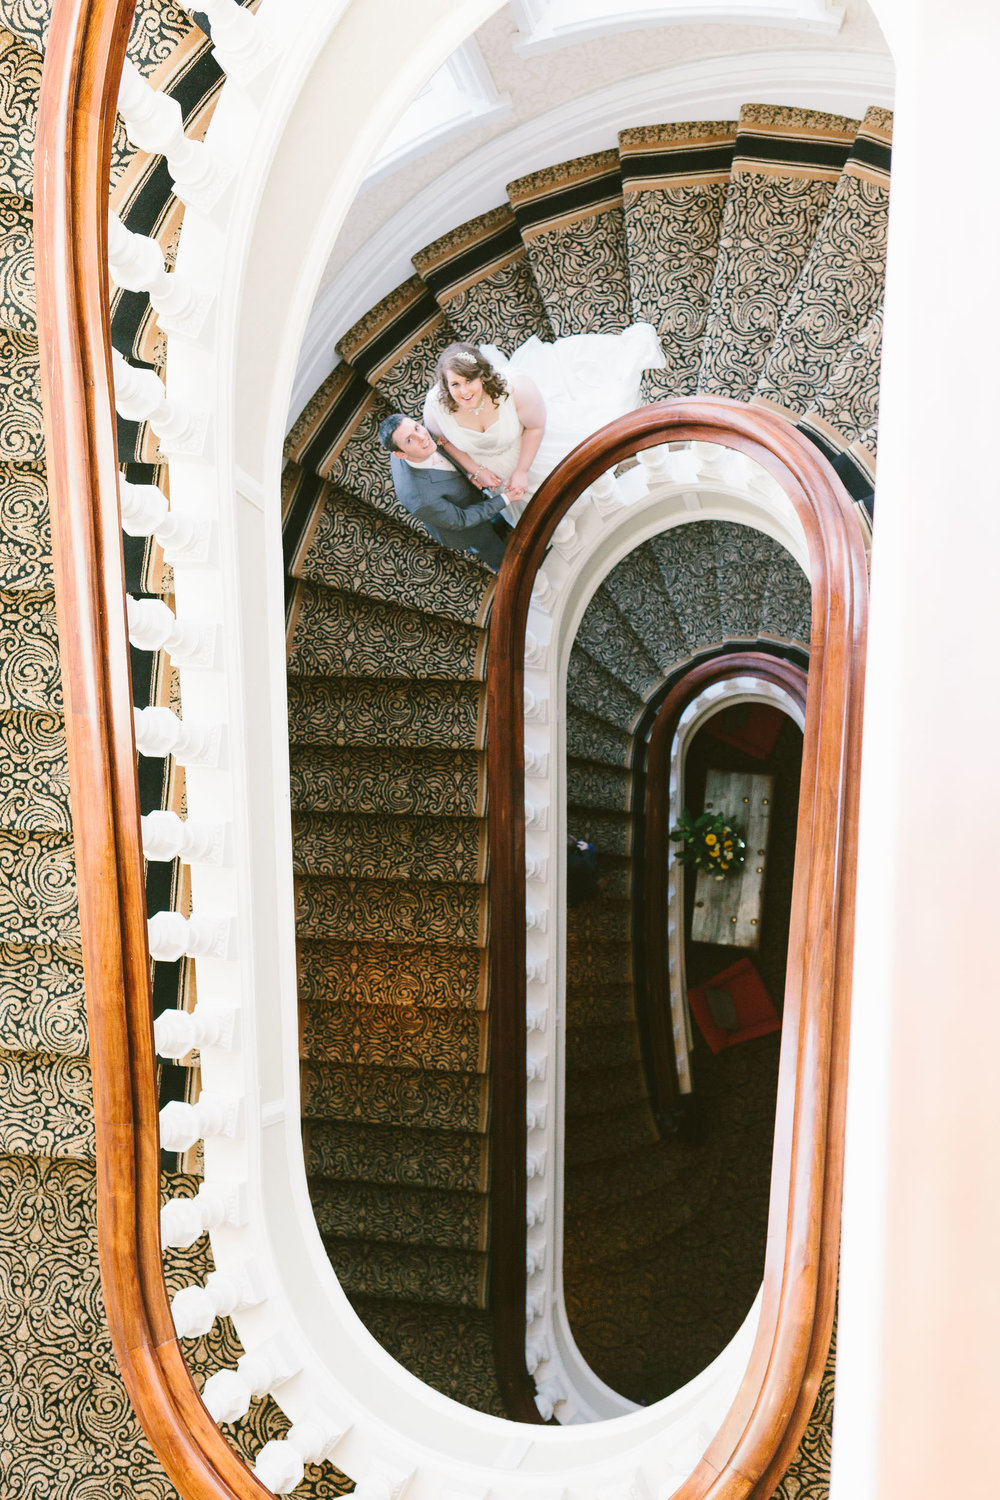 A photo looking down at the bride and groom on the staircase of the Grand Hotel